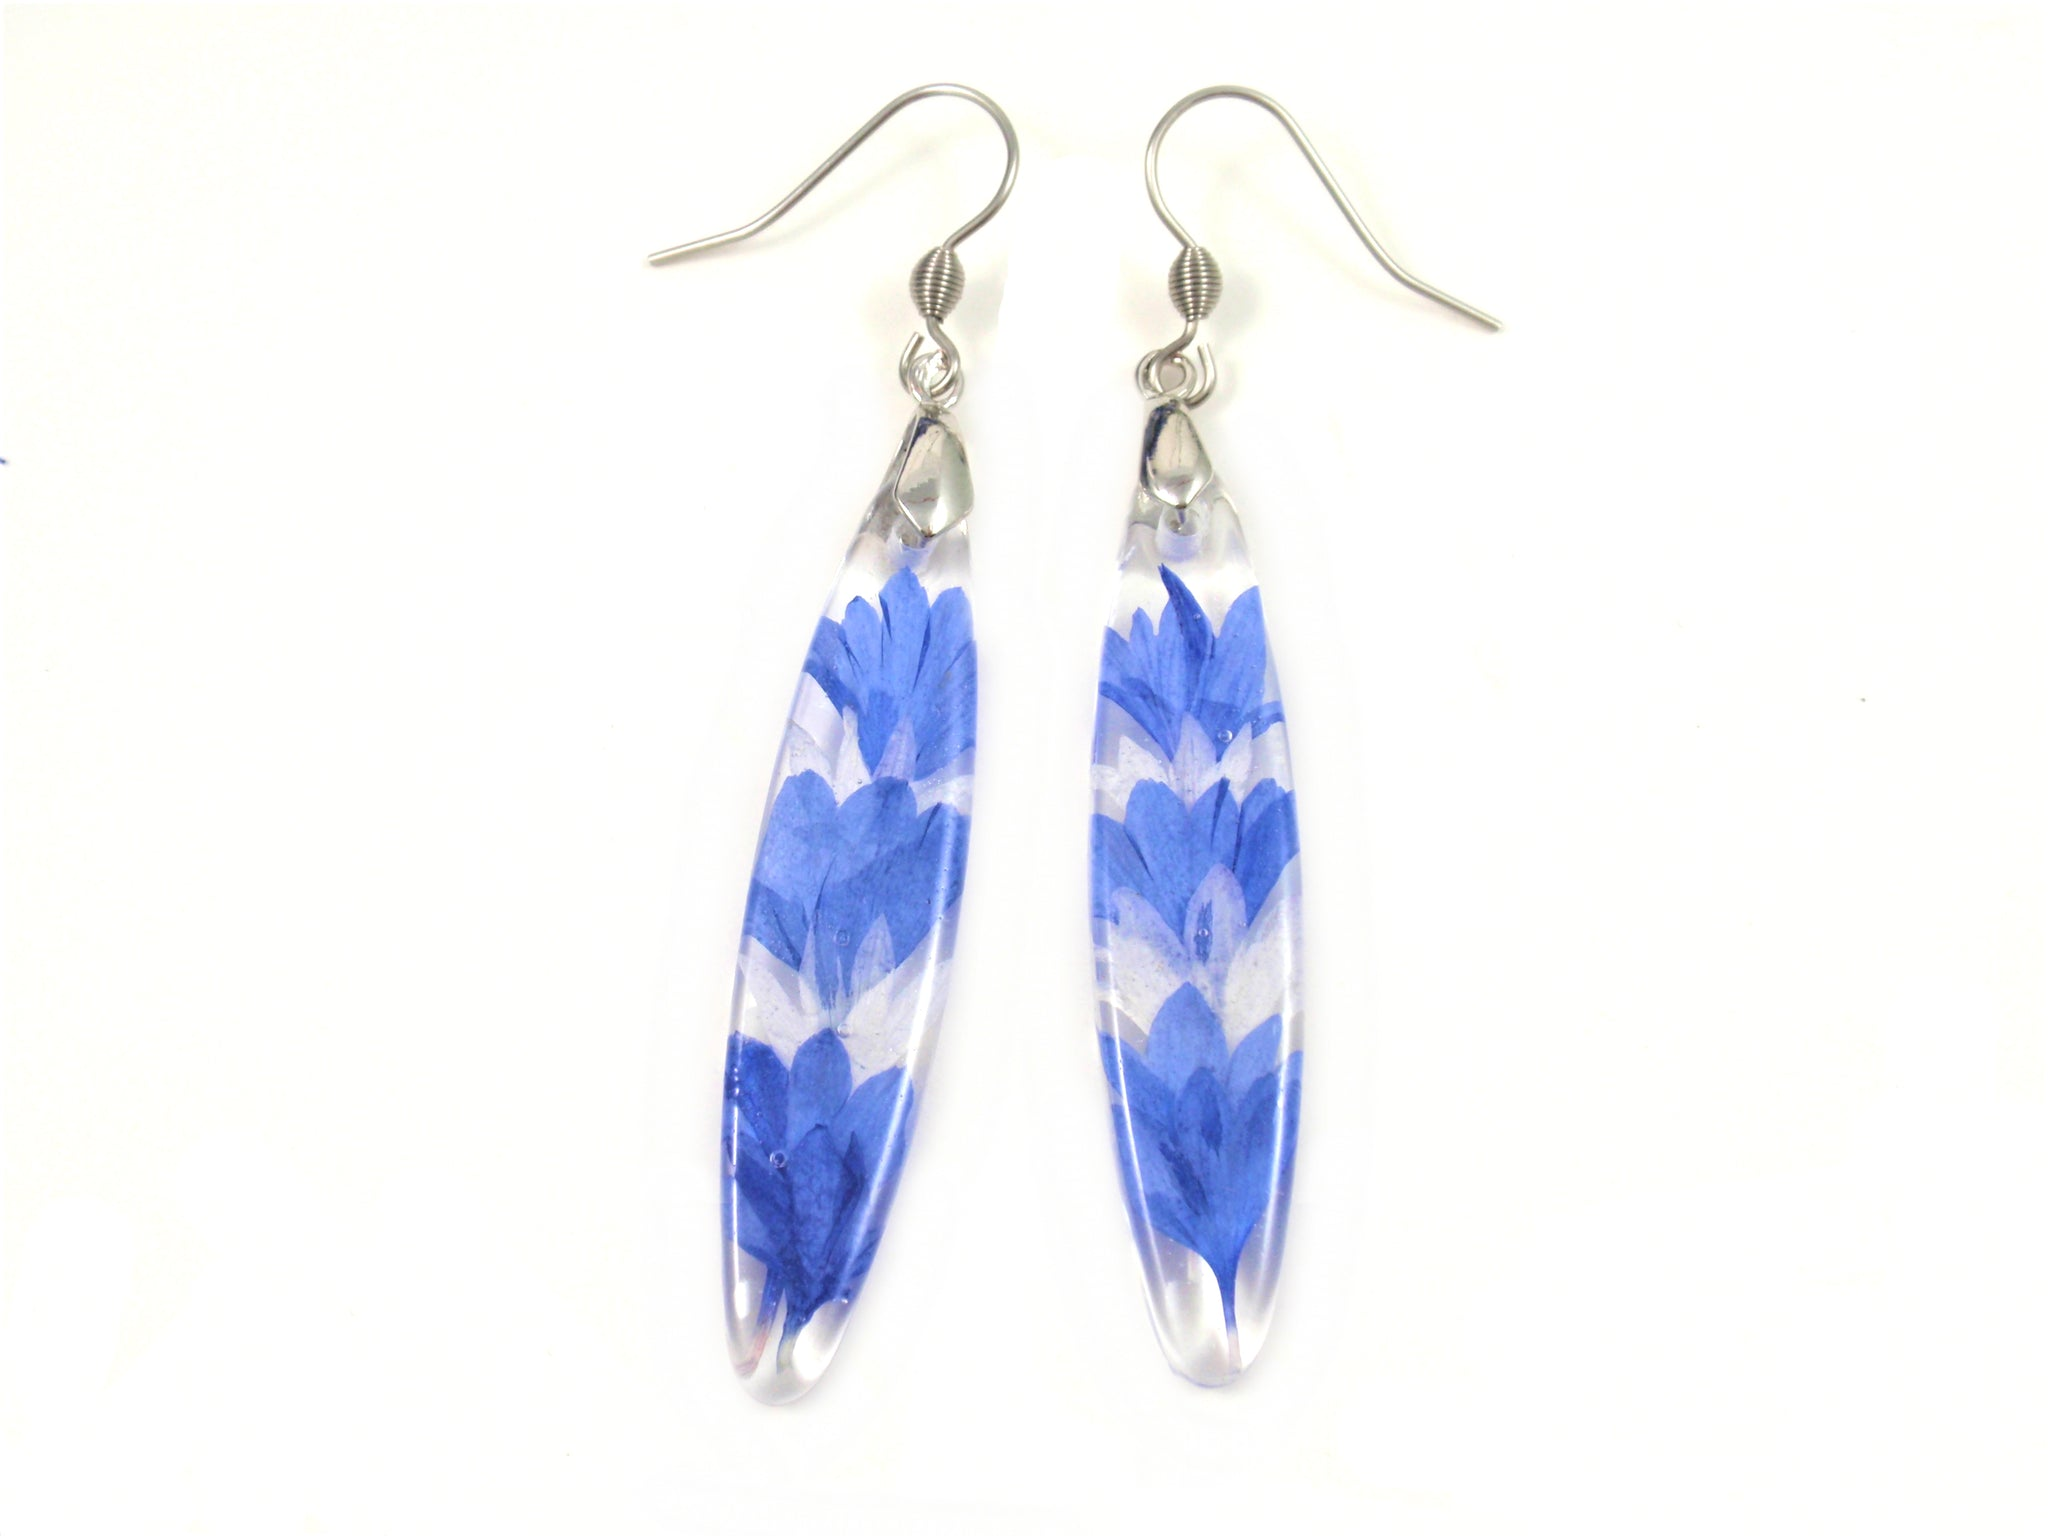 Pressed flower Nature earrings, Blue Cornflower petals Resin Jewelry